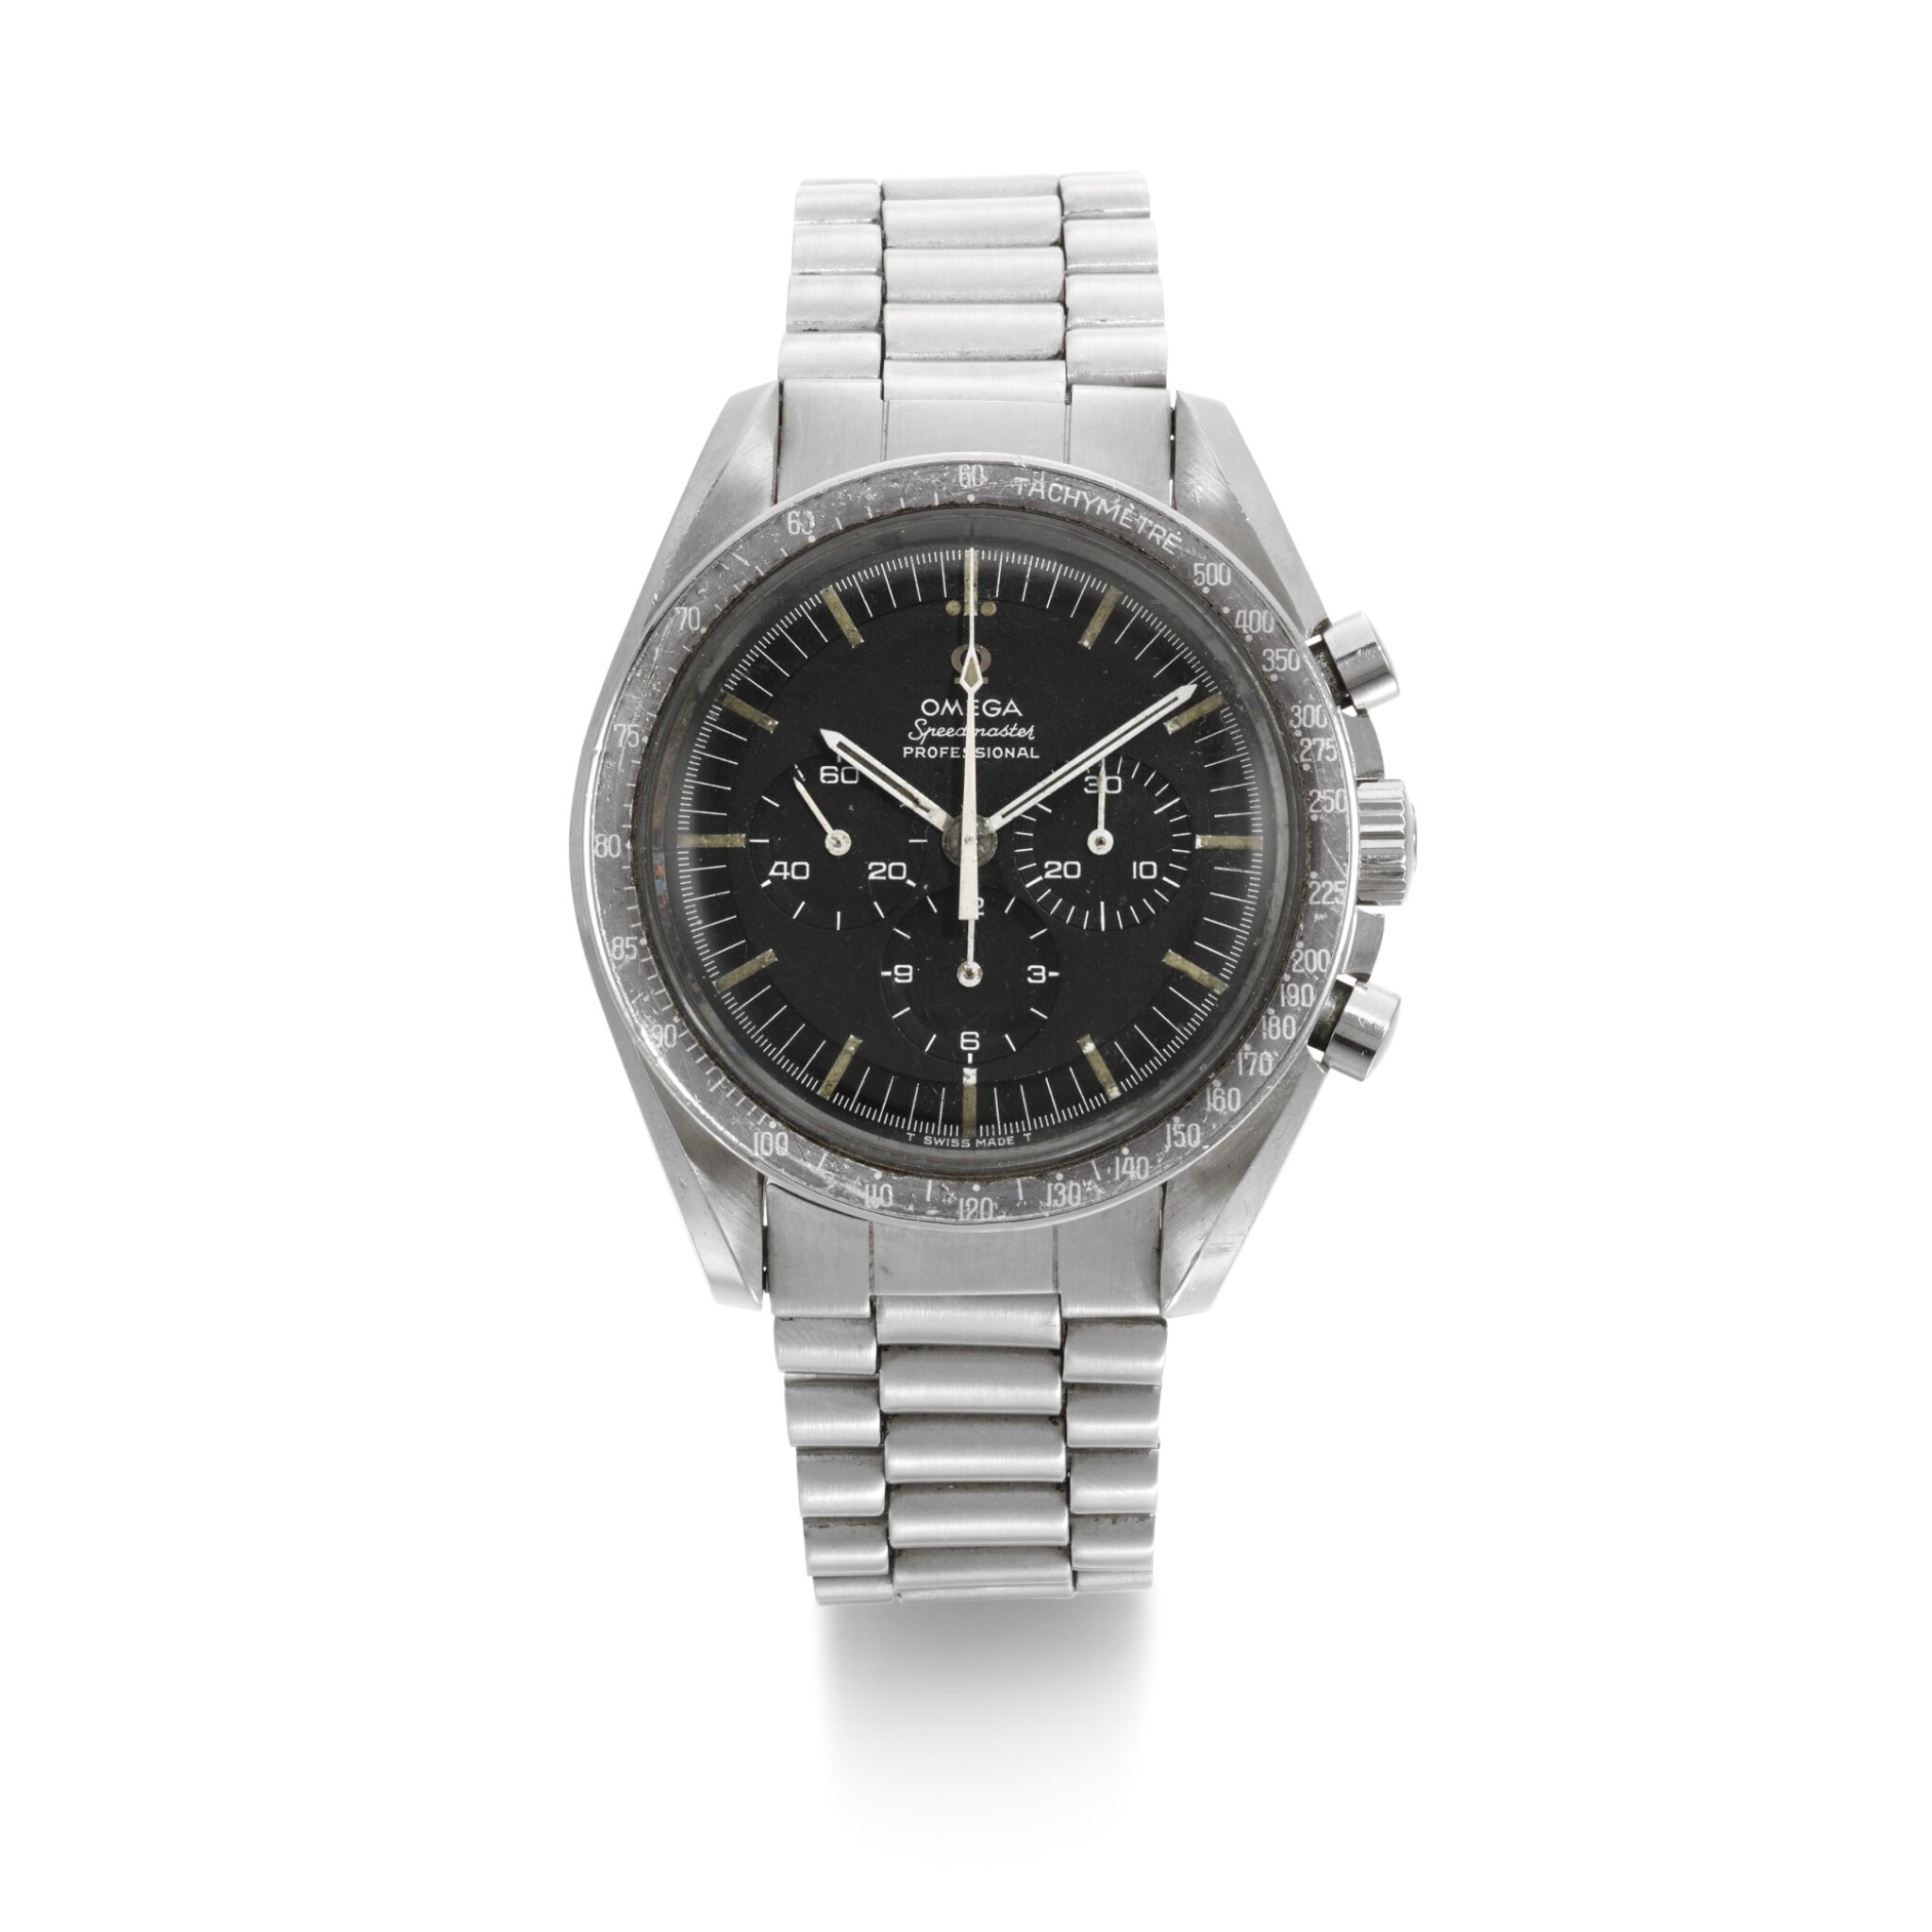 View full screen - View 1 of Lot 203. 'ORIGINAL MOONWATCH' SPEEDMASTER REFERENCE 105'012-66   STAINLESS STEEL CHRONOGRAPH WRISTWATCH WITH REGISTERS, CIRCA 1966 .